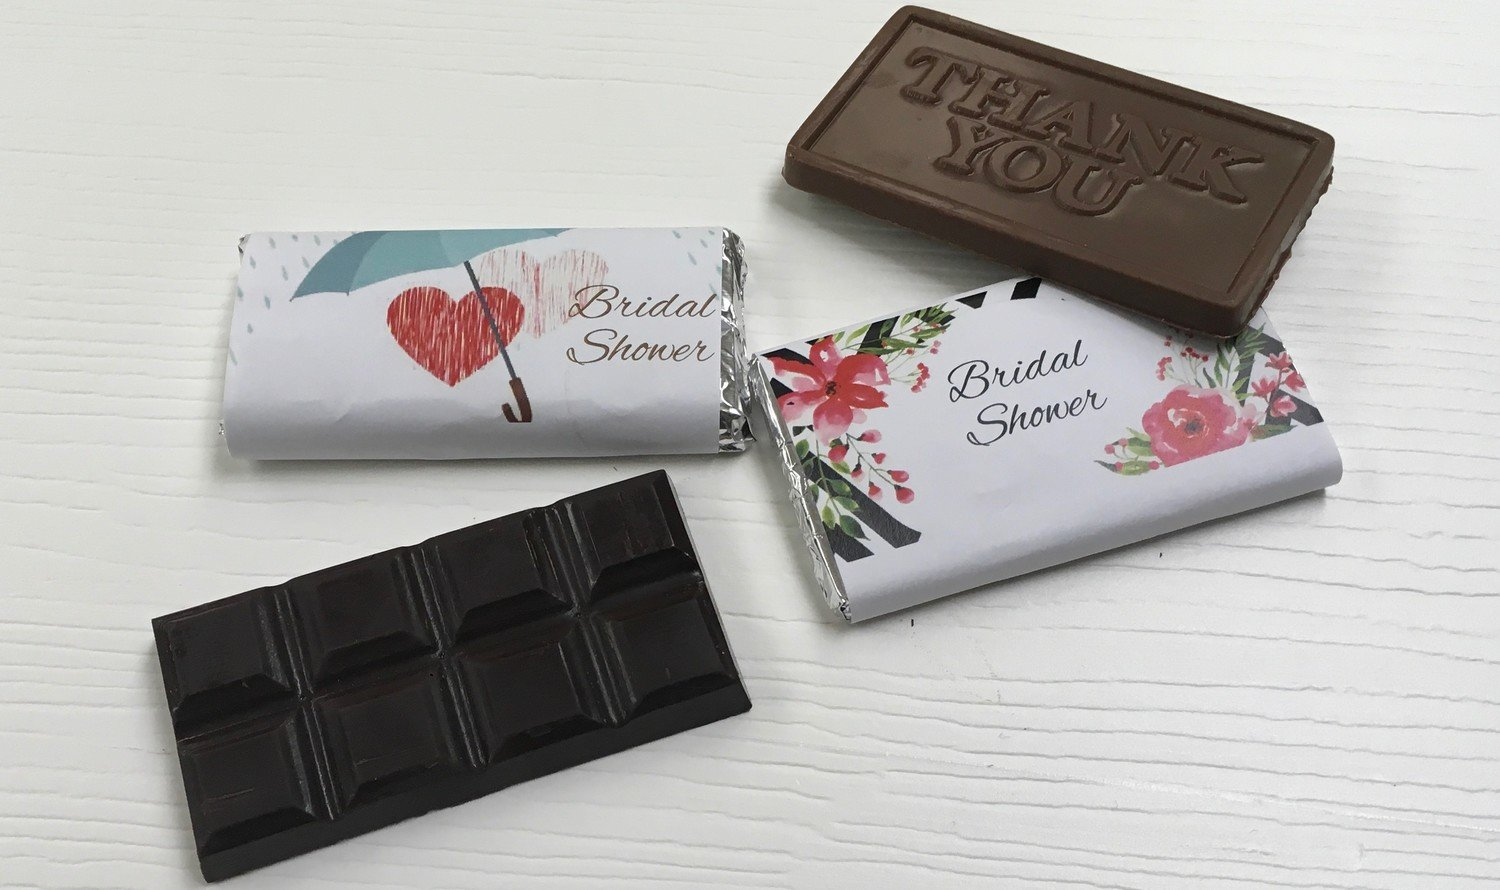 Personalized Bridal Shower Chocolate Bars.  (Chocolate included) Choose Thank you bar or Chocolate bar.